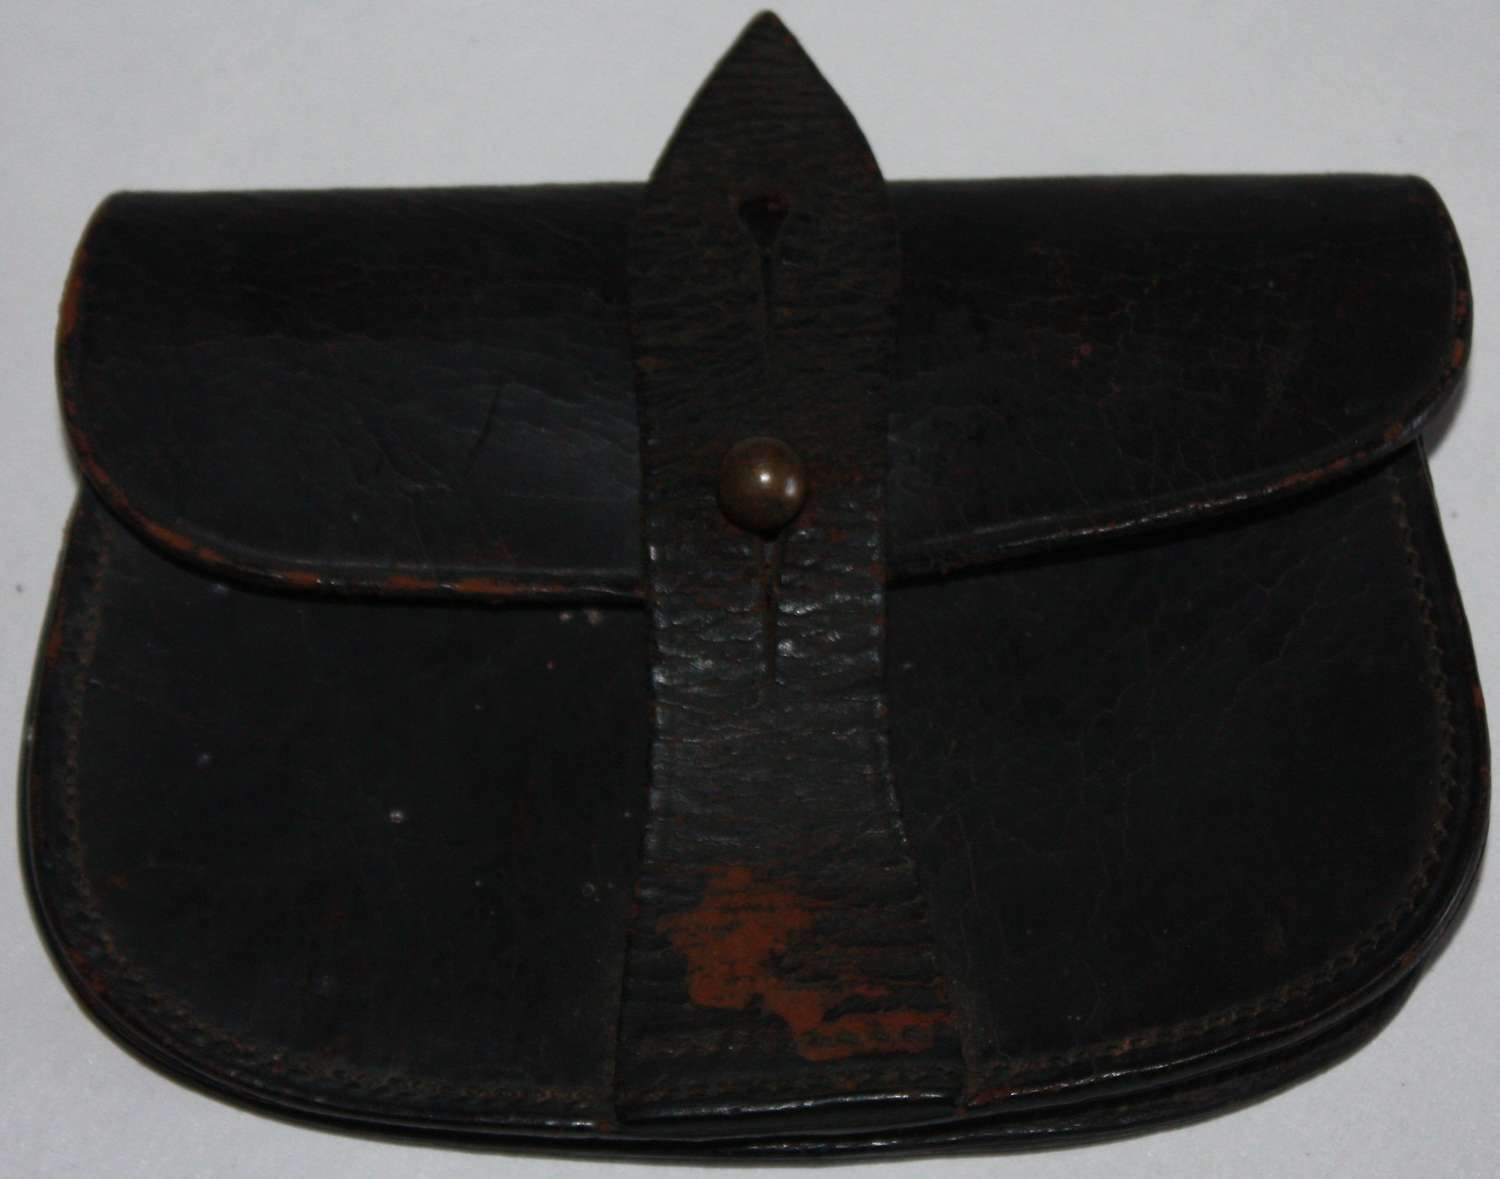 A GOOD USED POST WWI SAM BROWN PISTOL AMMO POUCH